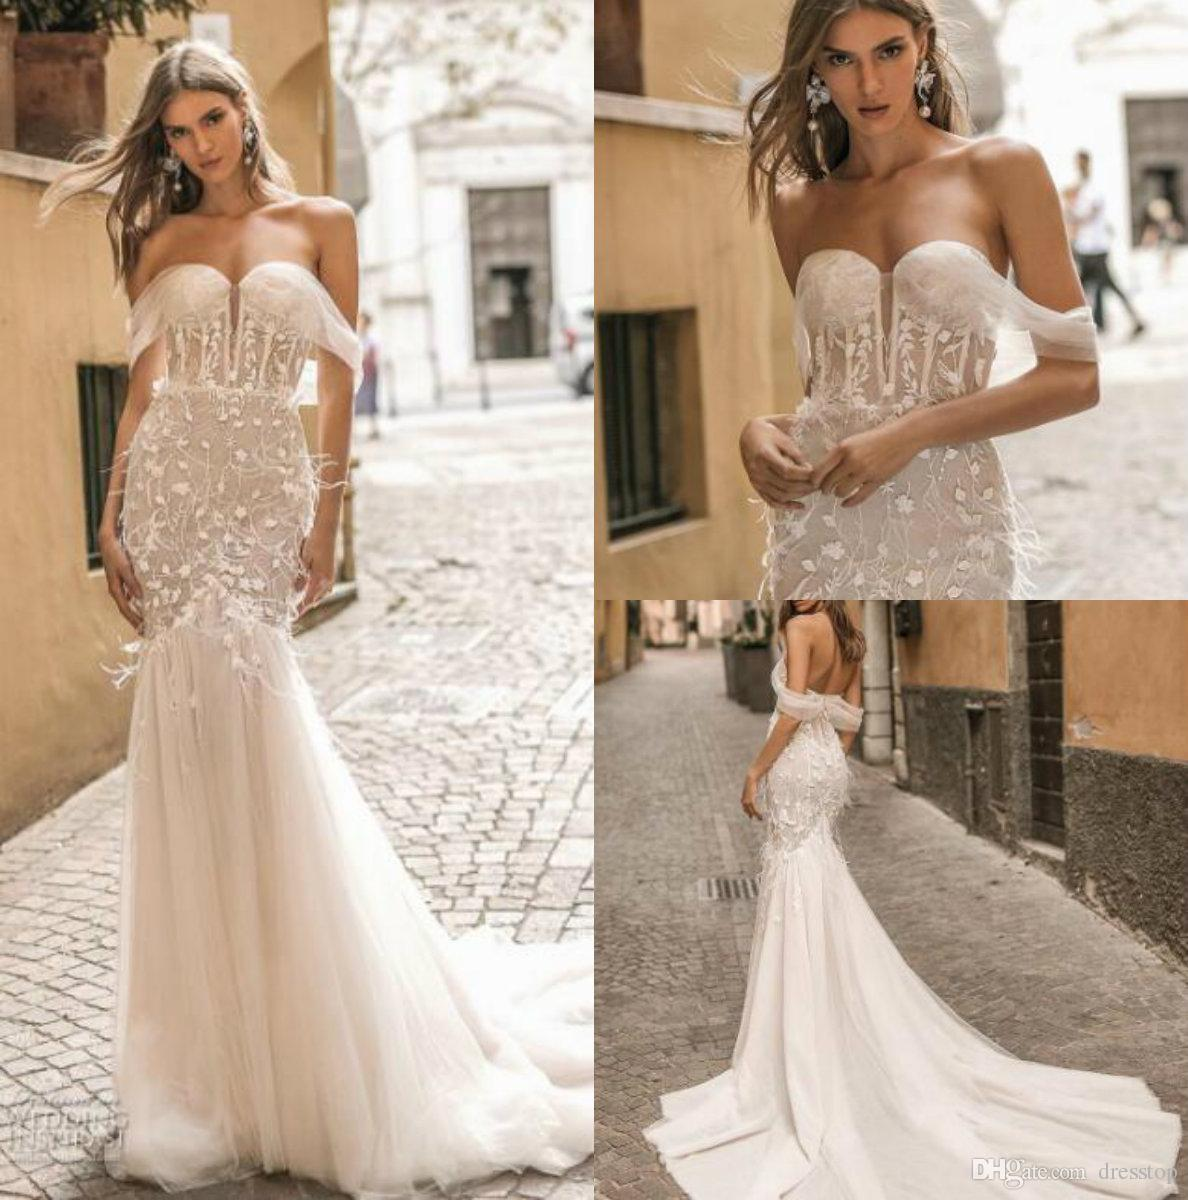 Berta Privee 2019 Wedding Dresses Sexy Off Shoulder Lace Bridal Gowns With Feathers Sweep Train Backless Beach Boho Wedding Dress Custom